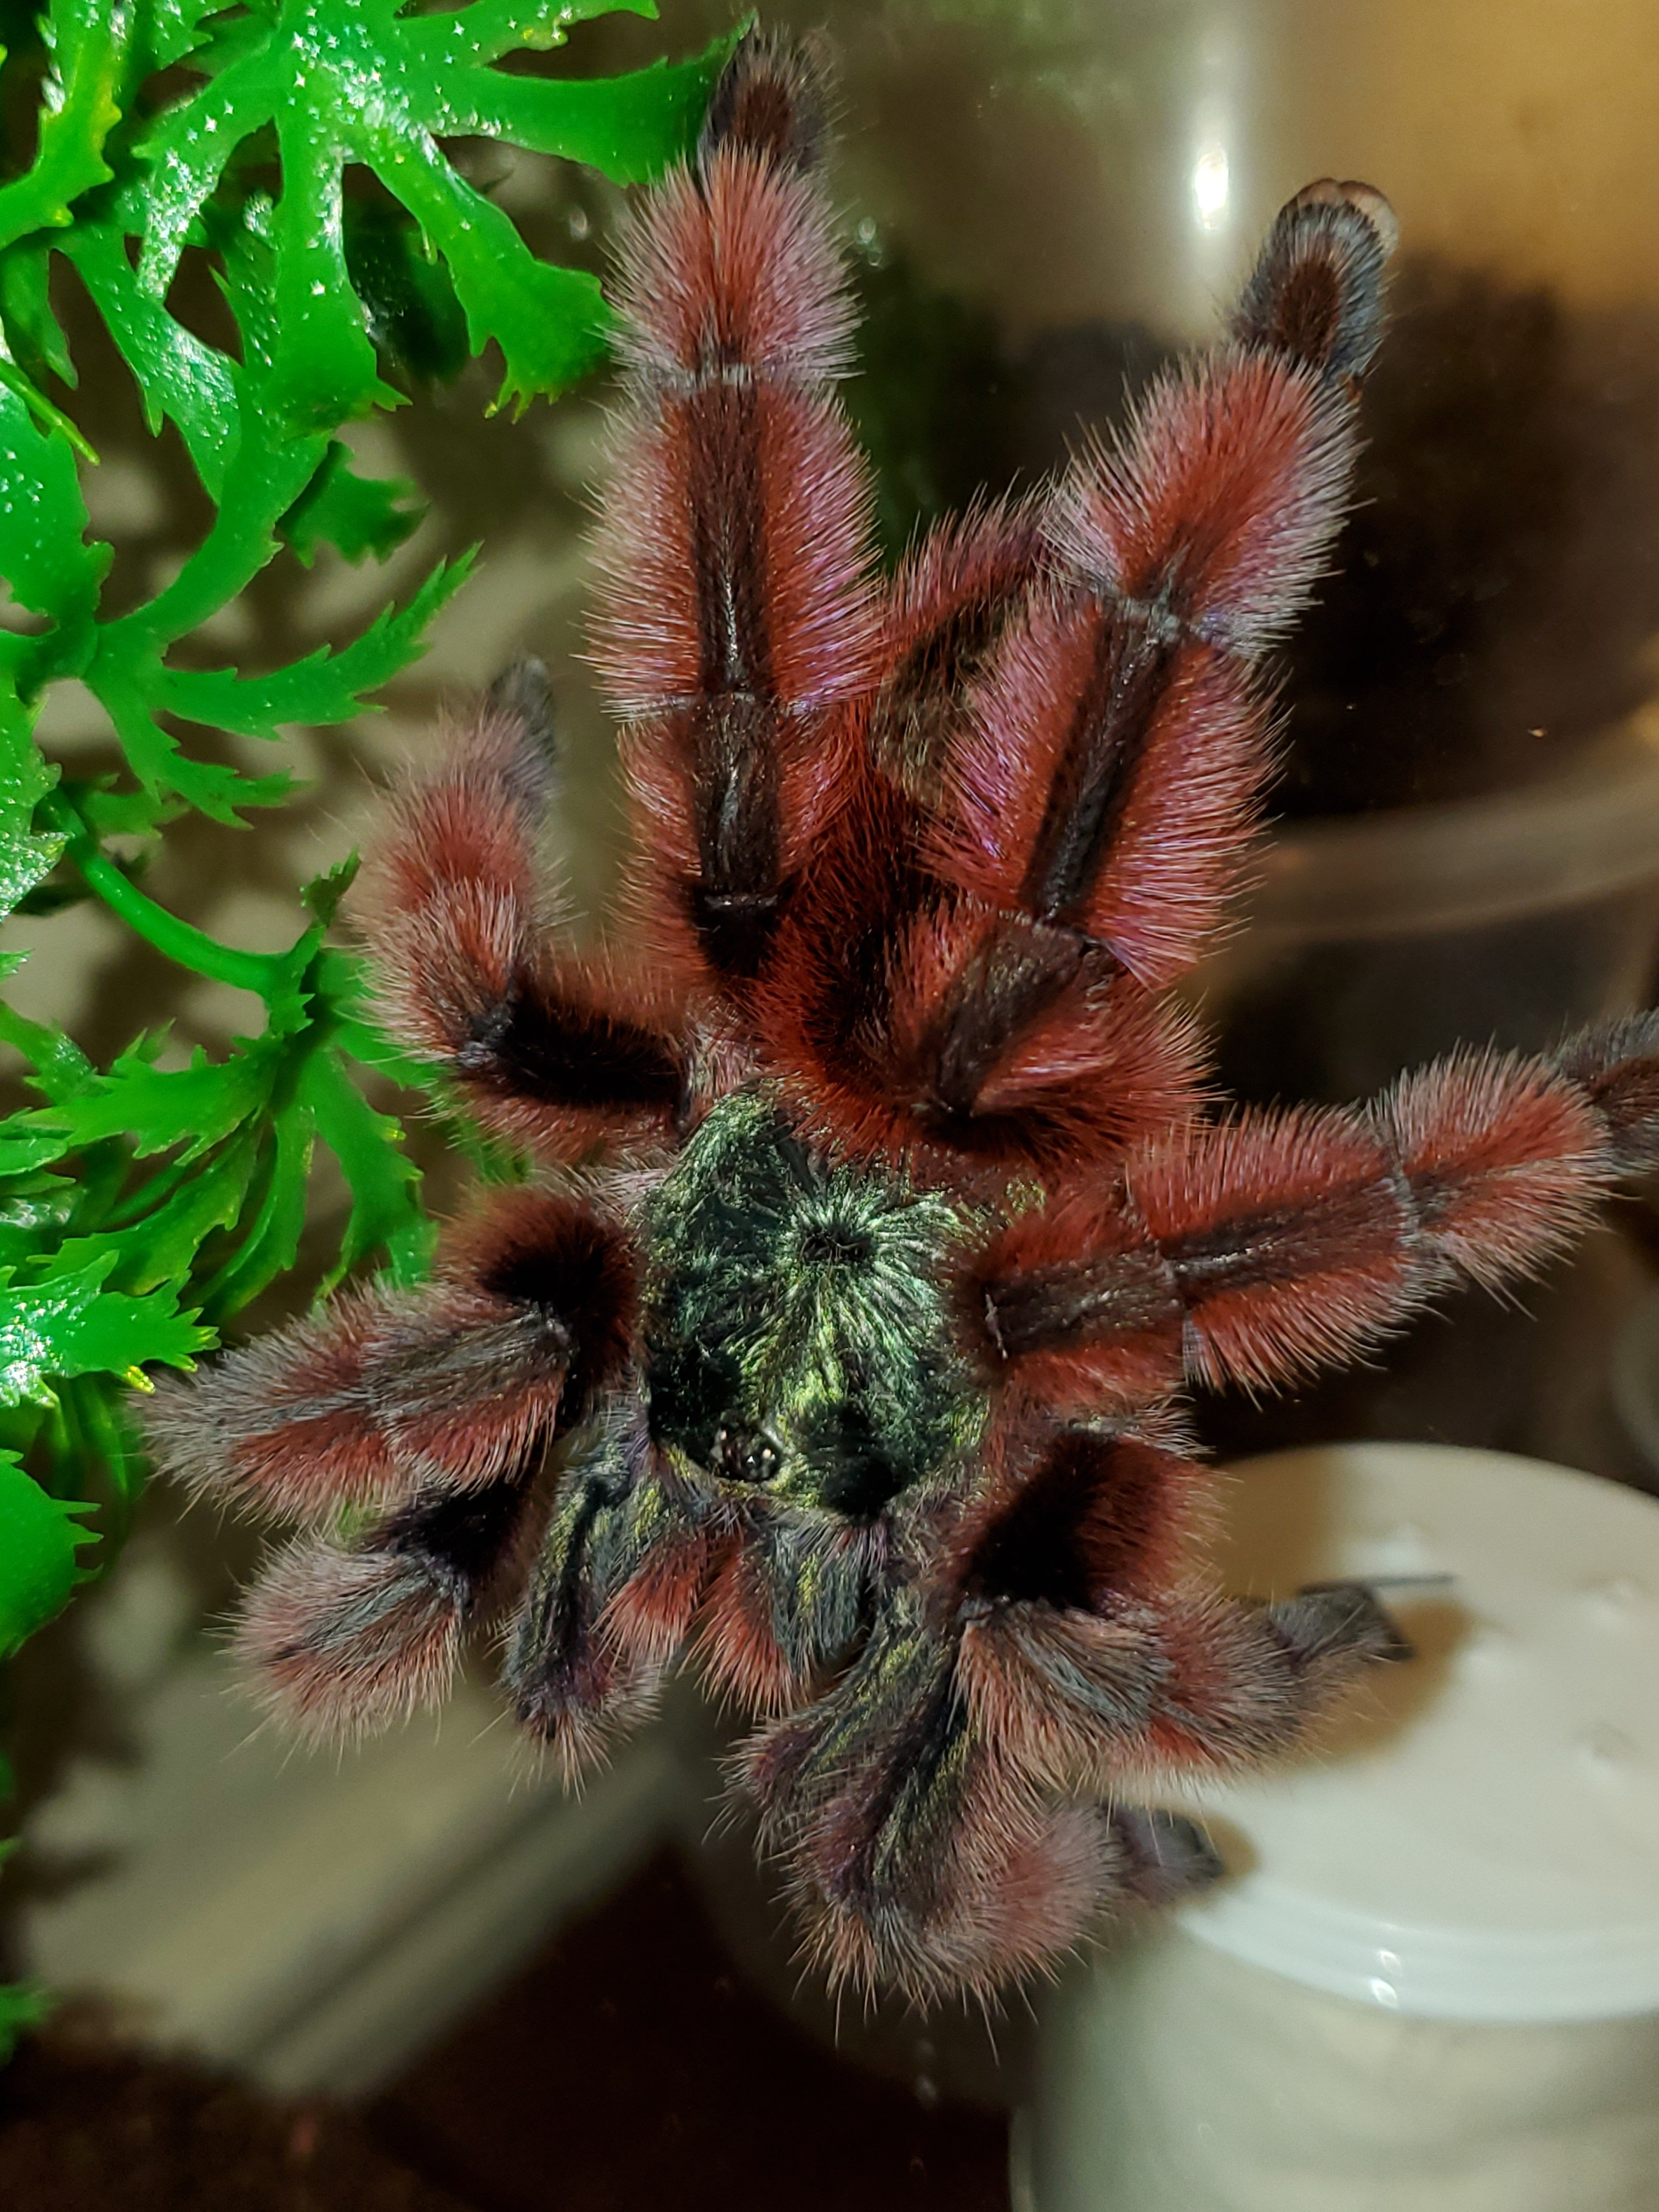 Adult female Caribena versicolor